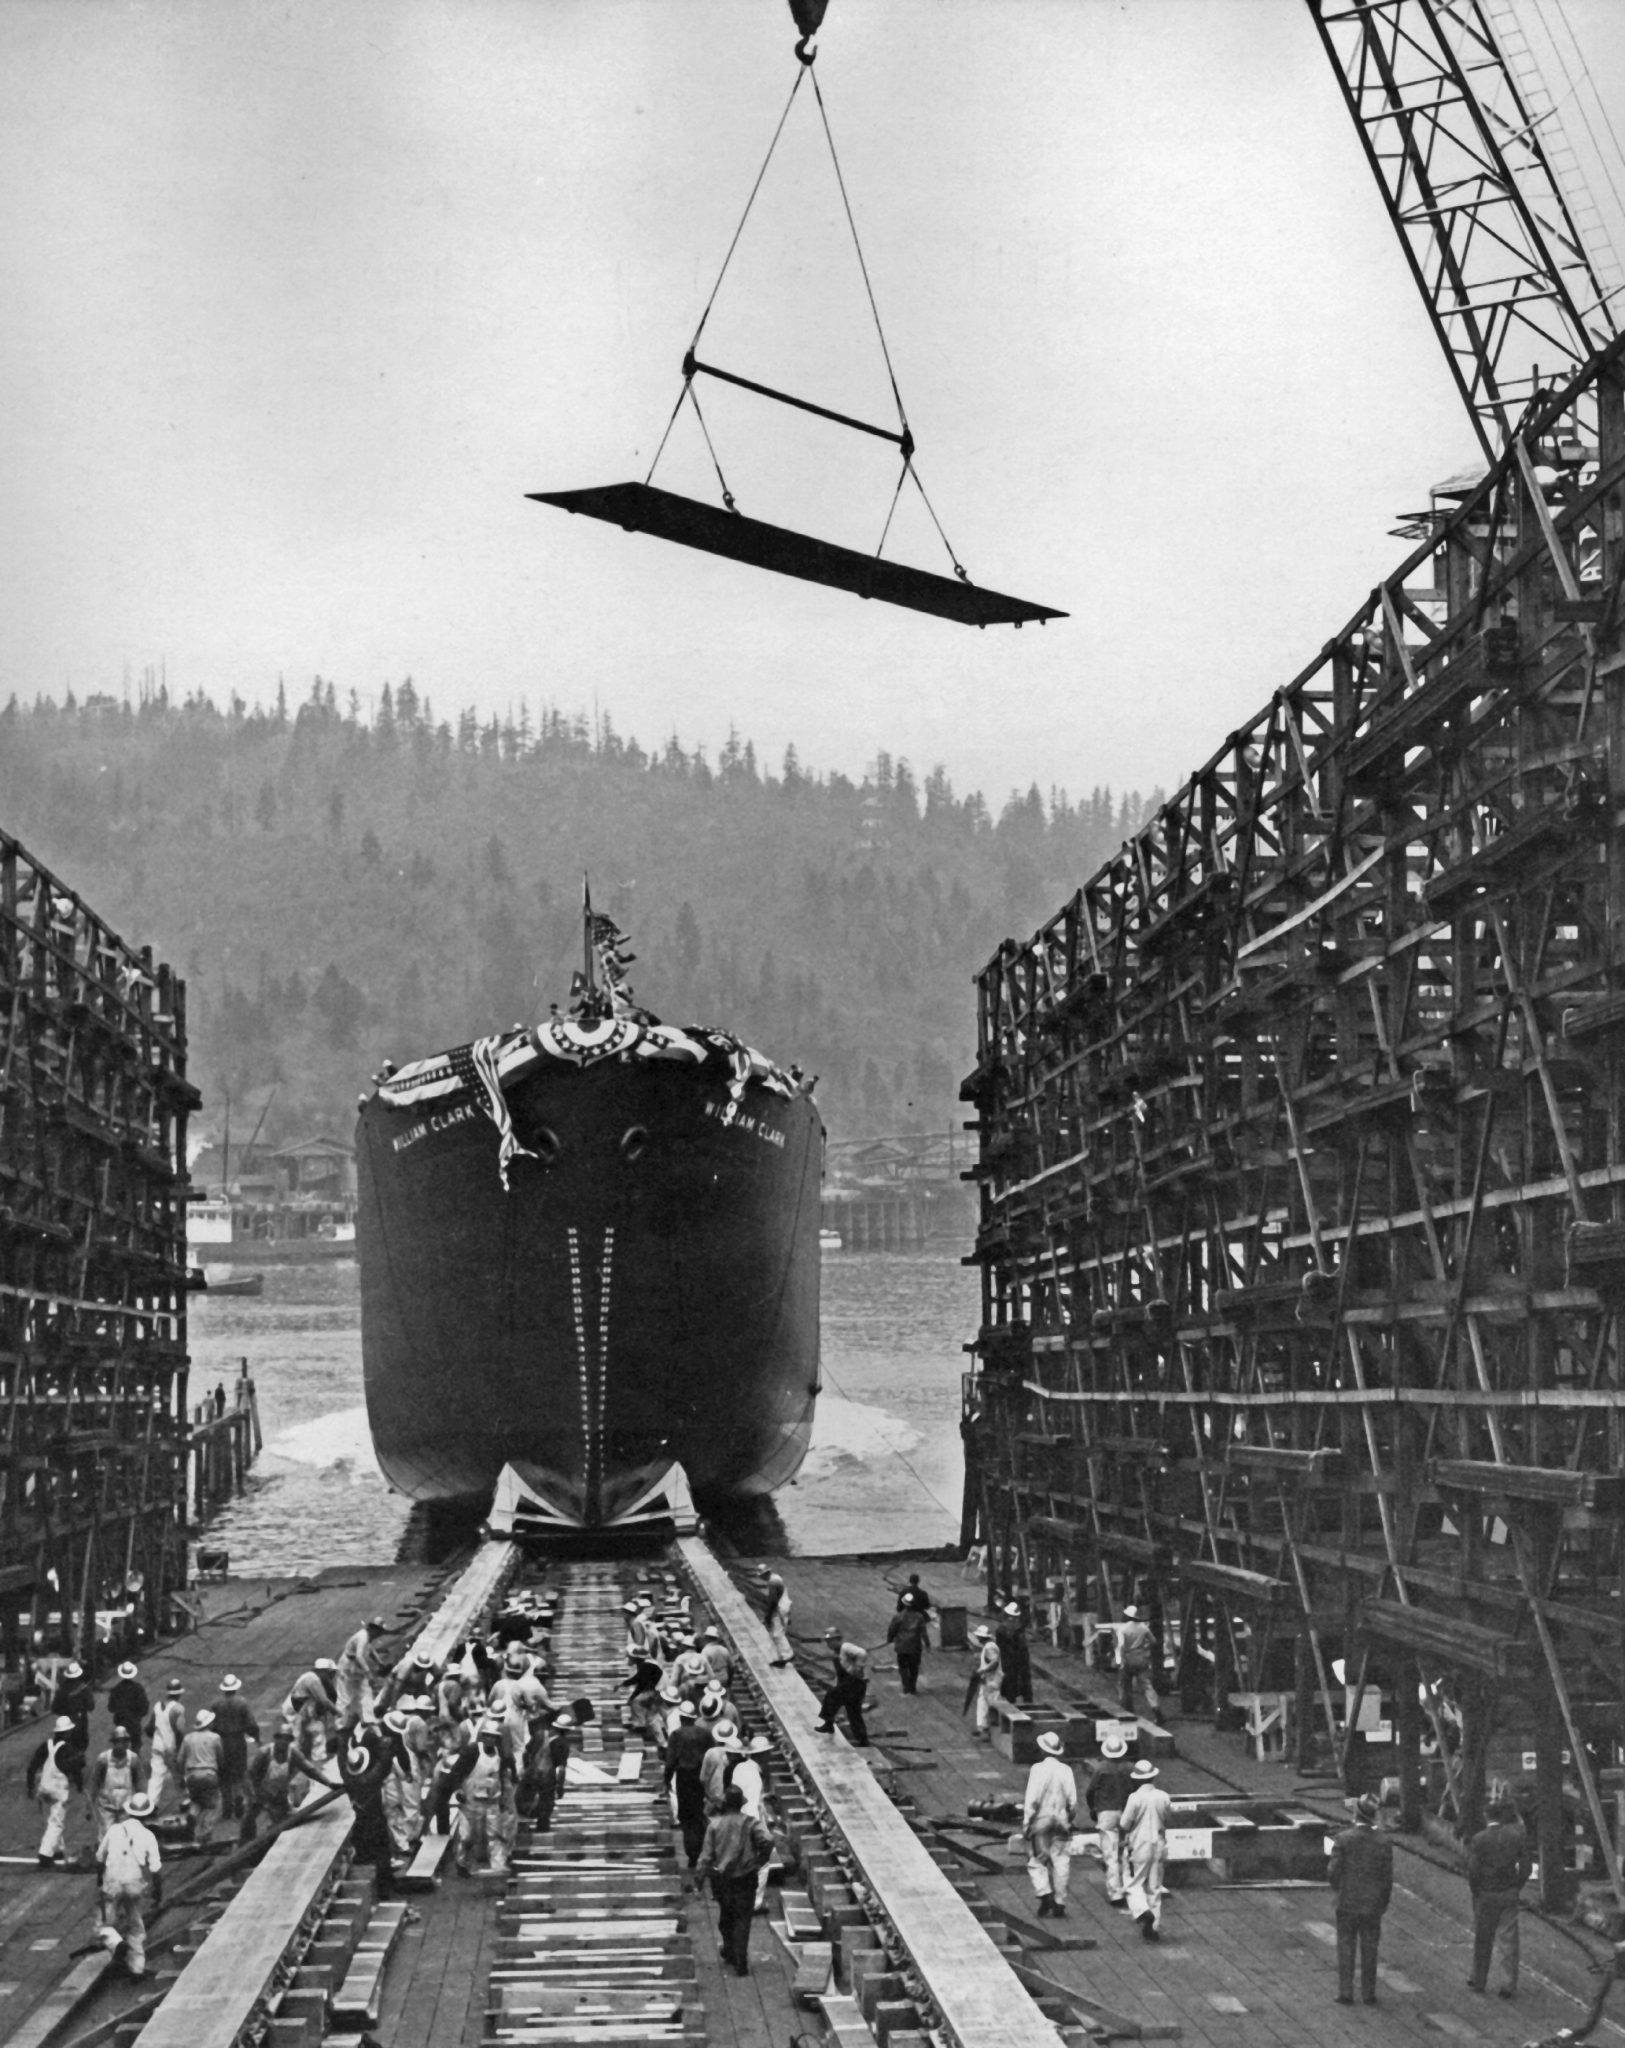 Oiled slideway ship launch